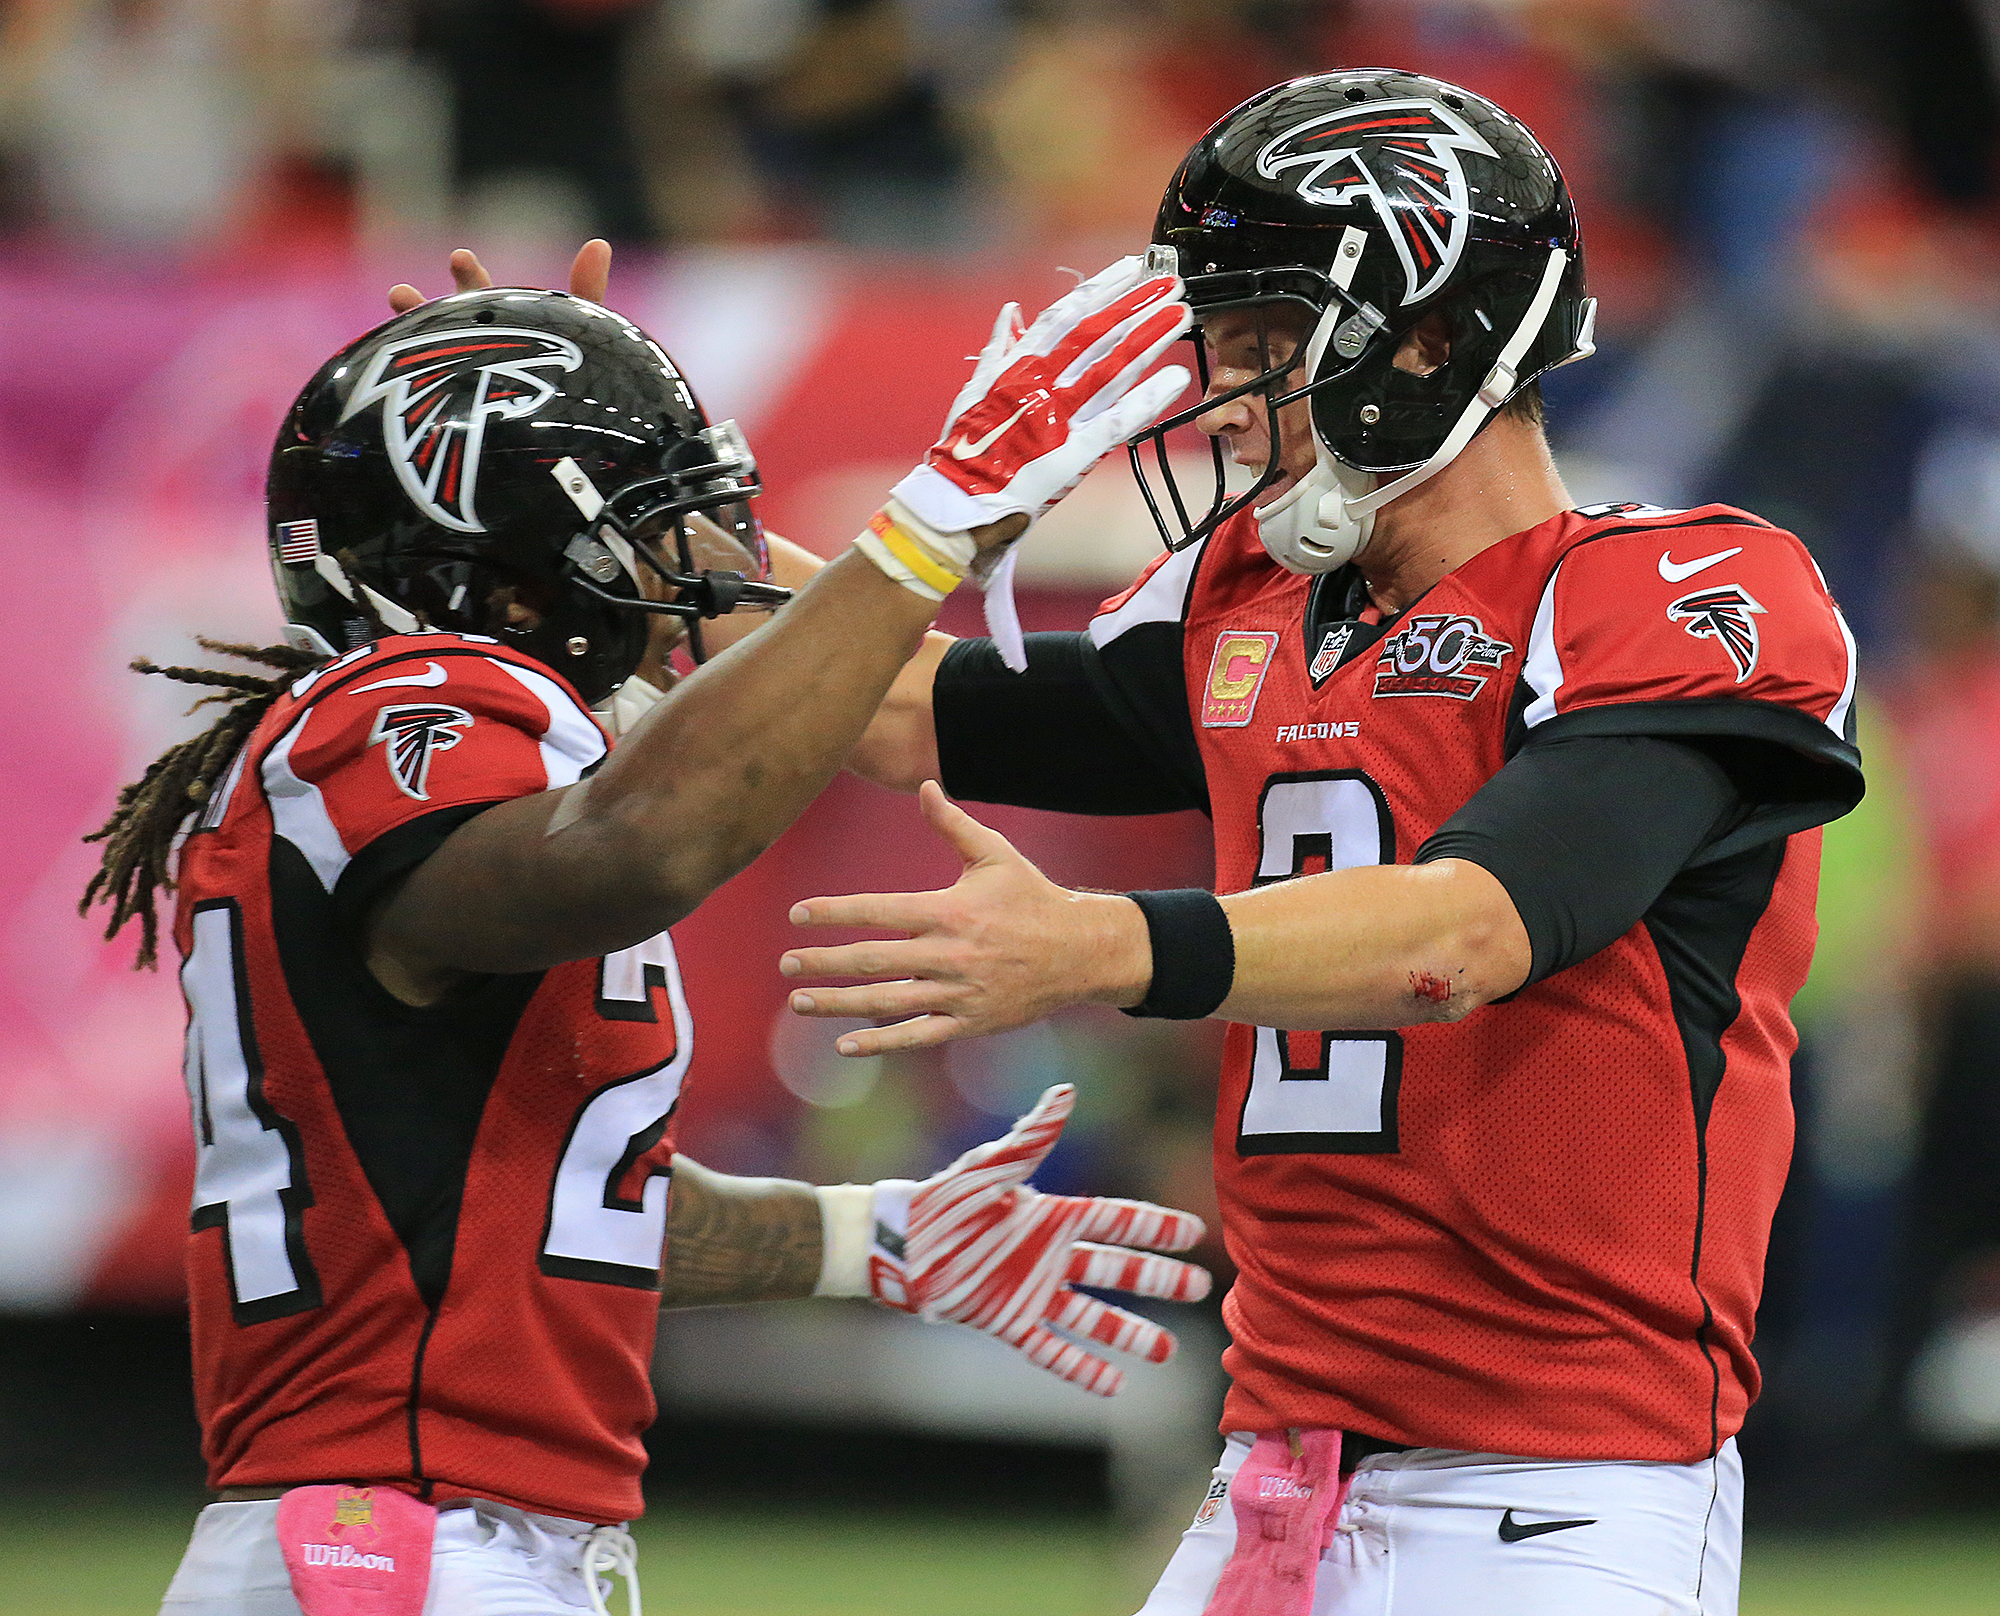 Falcons running back Devonta Freeman, left, celebrates his second touchdown run of the day with quarterback Matt Ryan during the second quarter of their NFL football game against the Texans in Atlanta on Sunday, Oct. 4, 2015. (Curtis Compton/Atlanta Journ